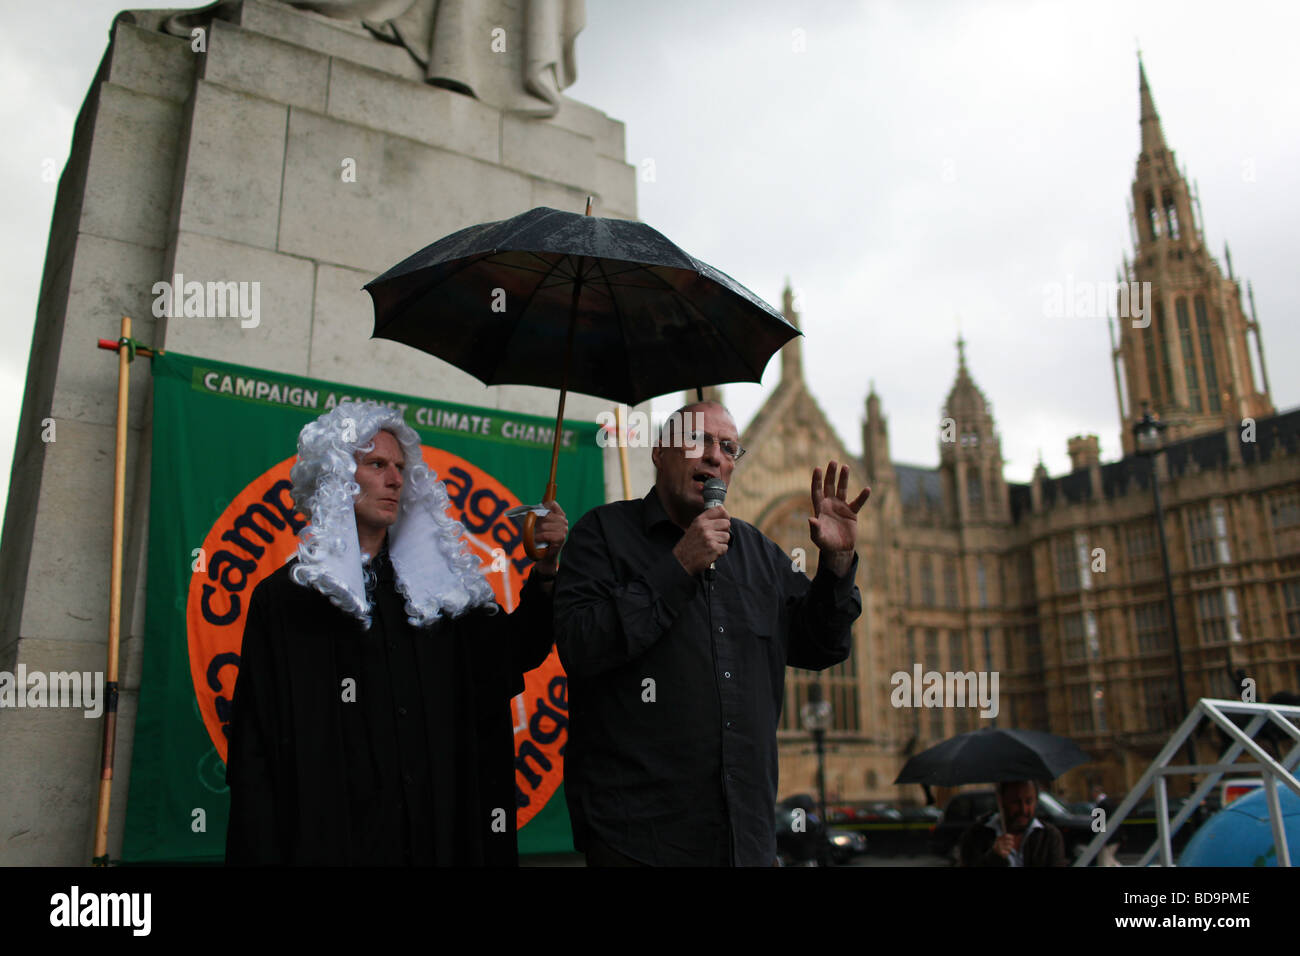 Climate change protest outside Westminster. Stock Photo